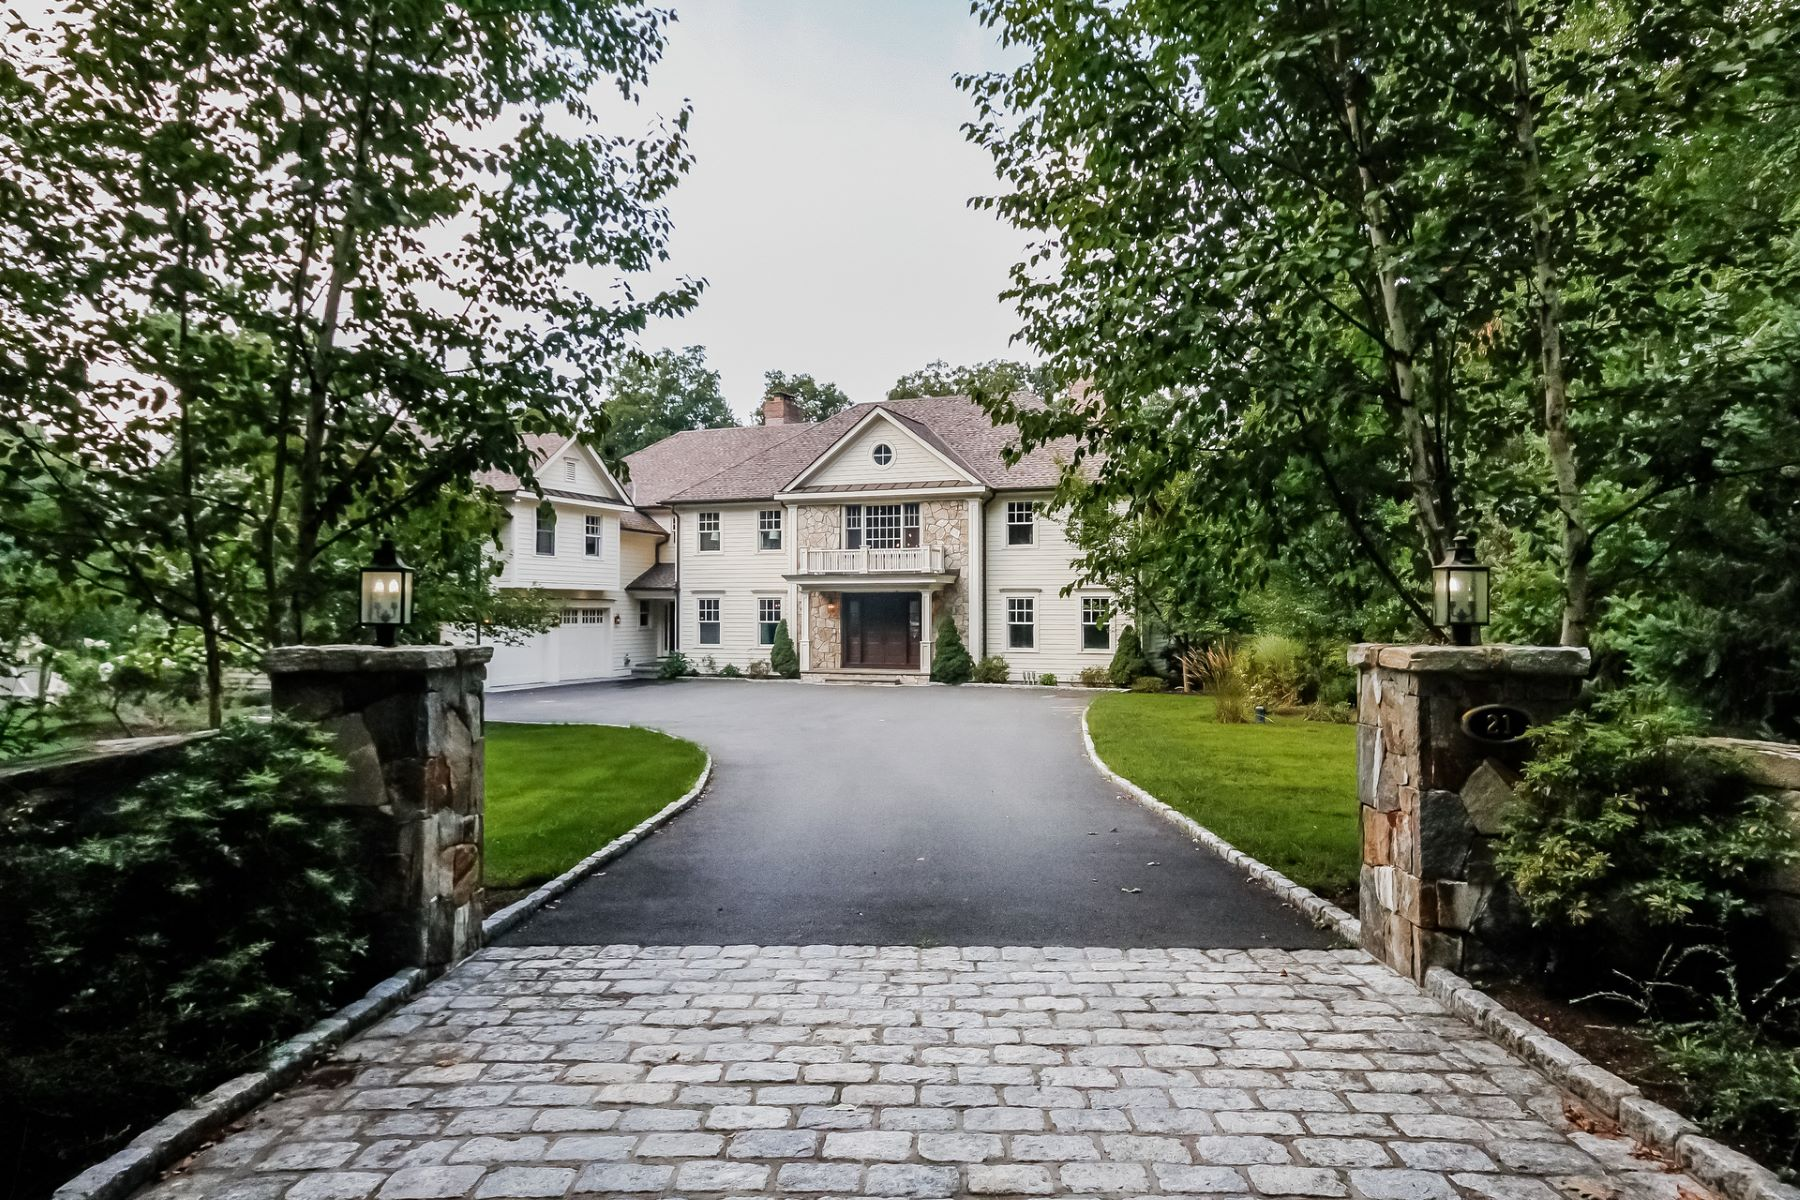 Single Family Homes for Sale at 21 Richmond Hill Road Weston, Connecticut 06883 United States